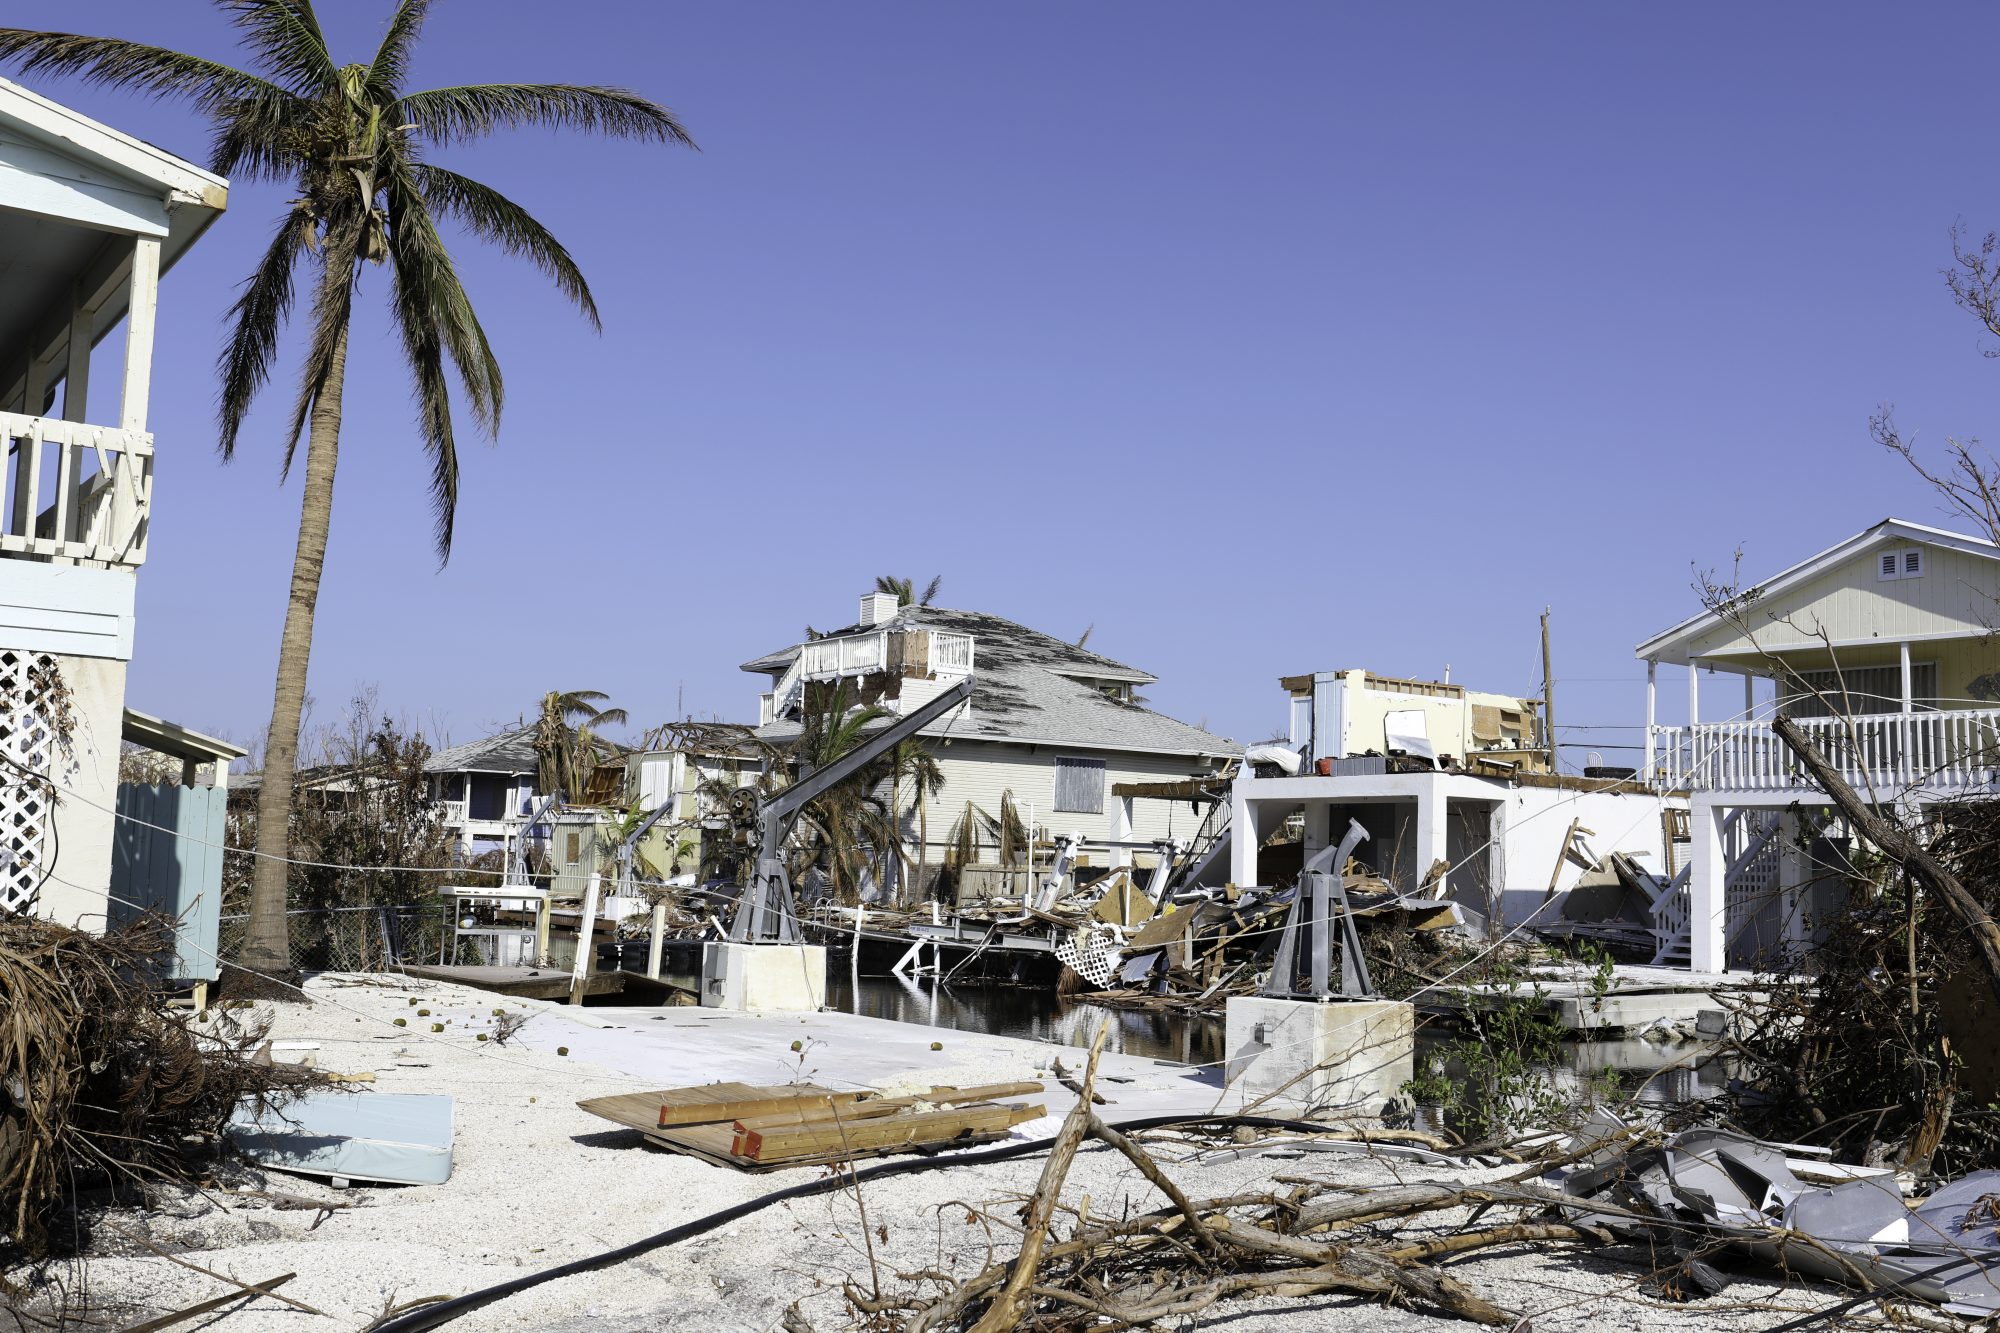 Hurricane Irma sustained itself for nearly two weeks, causing widespread—and devastating—damage throughout the Caribbean and the Florida Keys. The Category 5 storm peaked with 180 mph winds, decimating the islands of Barbuda, St. Barts, St. Martin, Anguilla, and the Virgin Islands. Irma caused $65 billion in damages, the second costliest Caribbean hurricane after Maria, and was 2017's top Google search term both in the U.S. and globally.